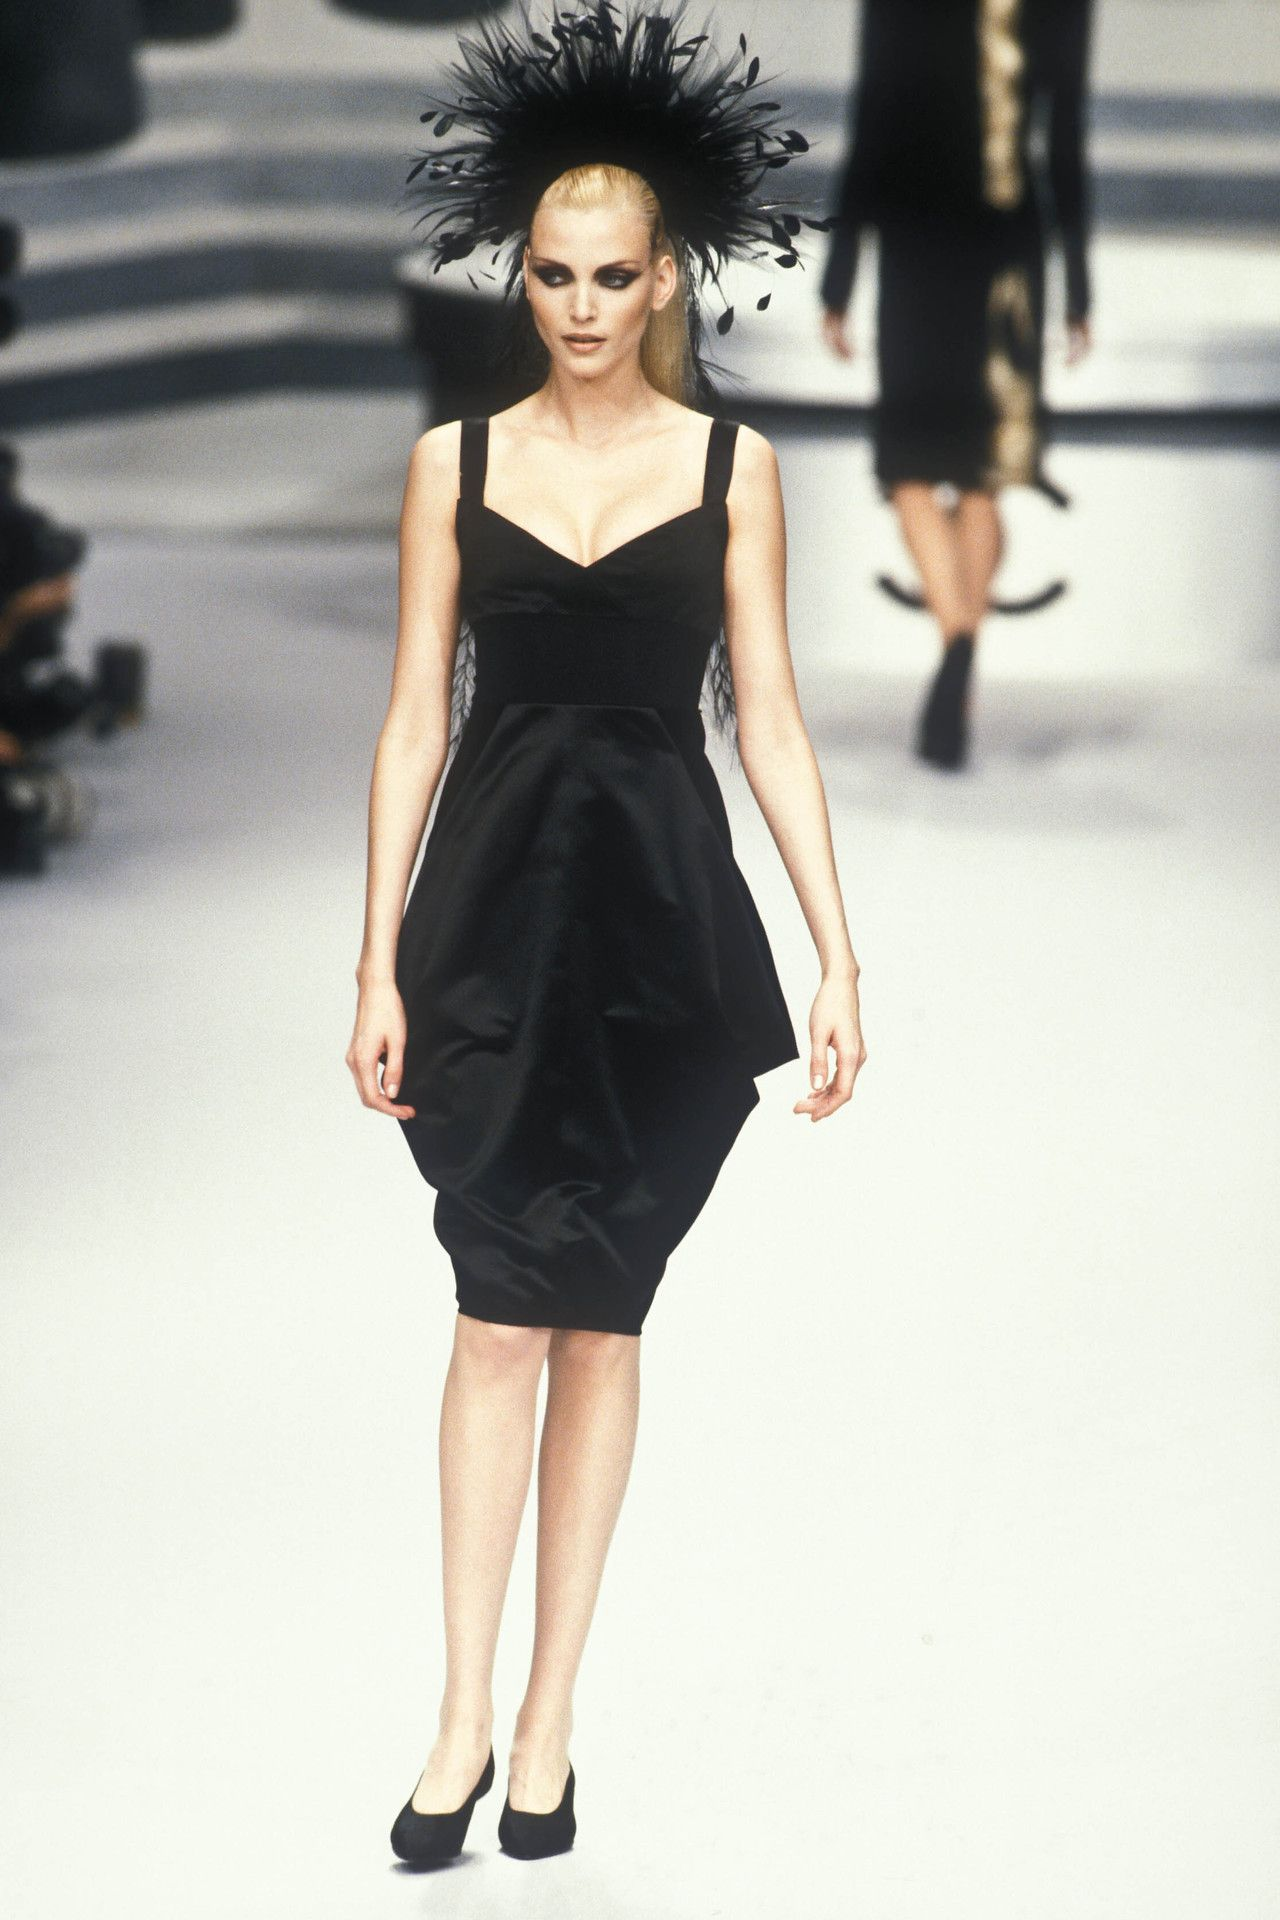 Nadja Auermann At Chanel Haute Couture F W 1995 90s Auermann Chanel Nadja Runway Fashion Haute Couture Chanel Haute Couture